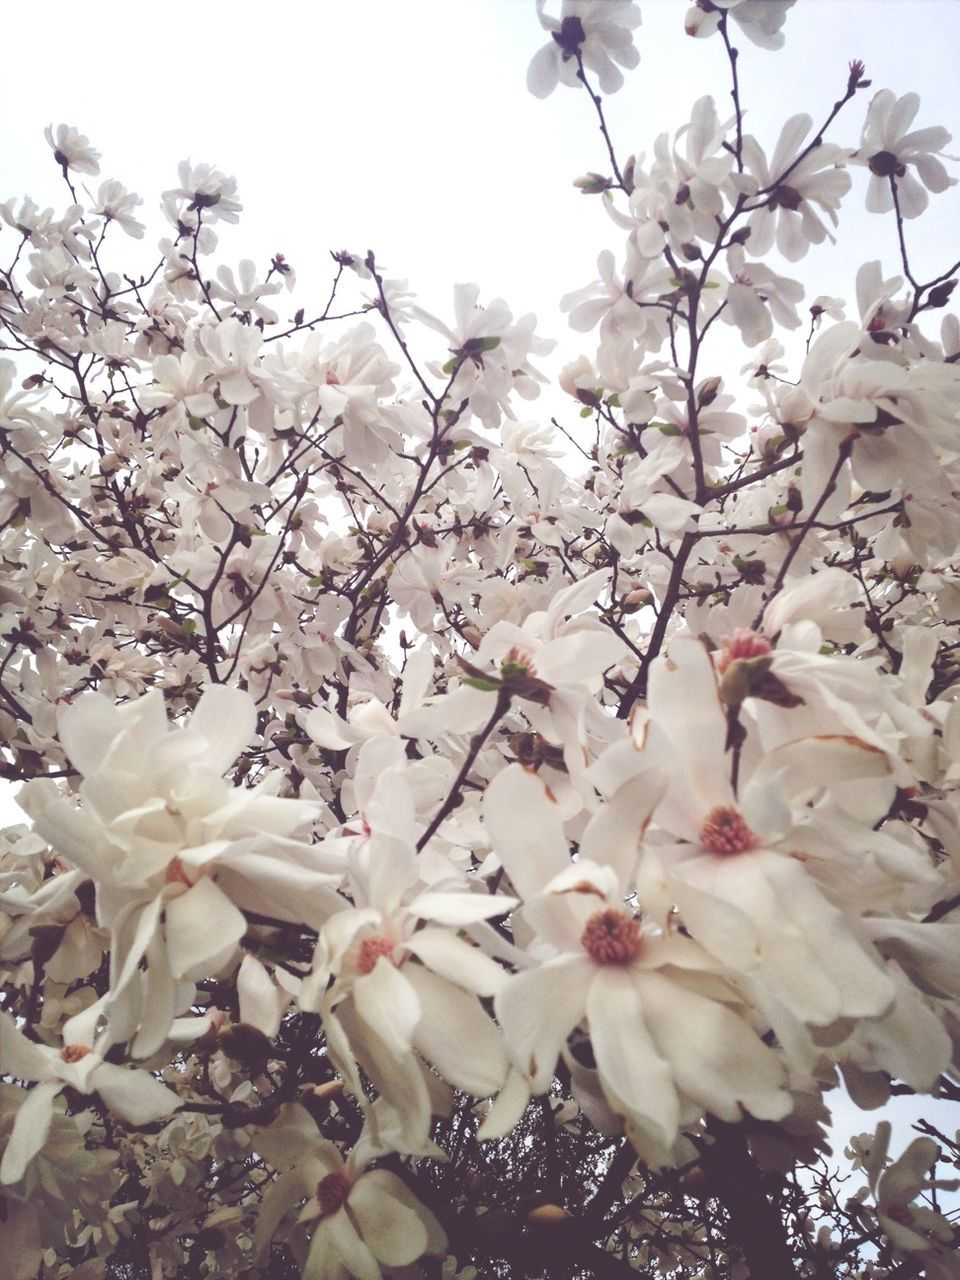 Low Angle View Of White Flowers Blooming Against Clear Sky